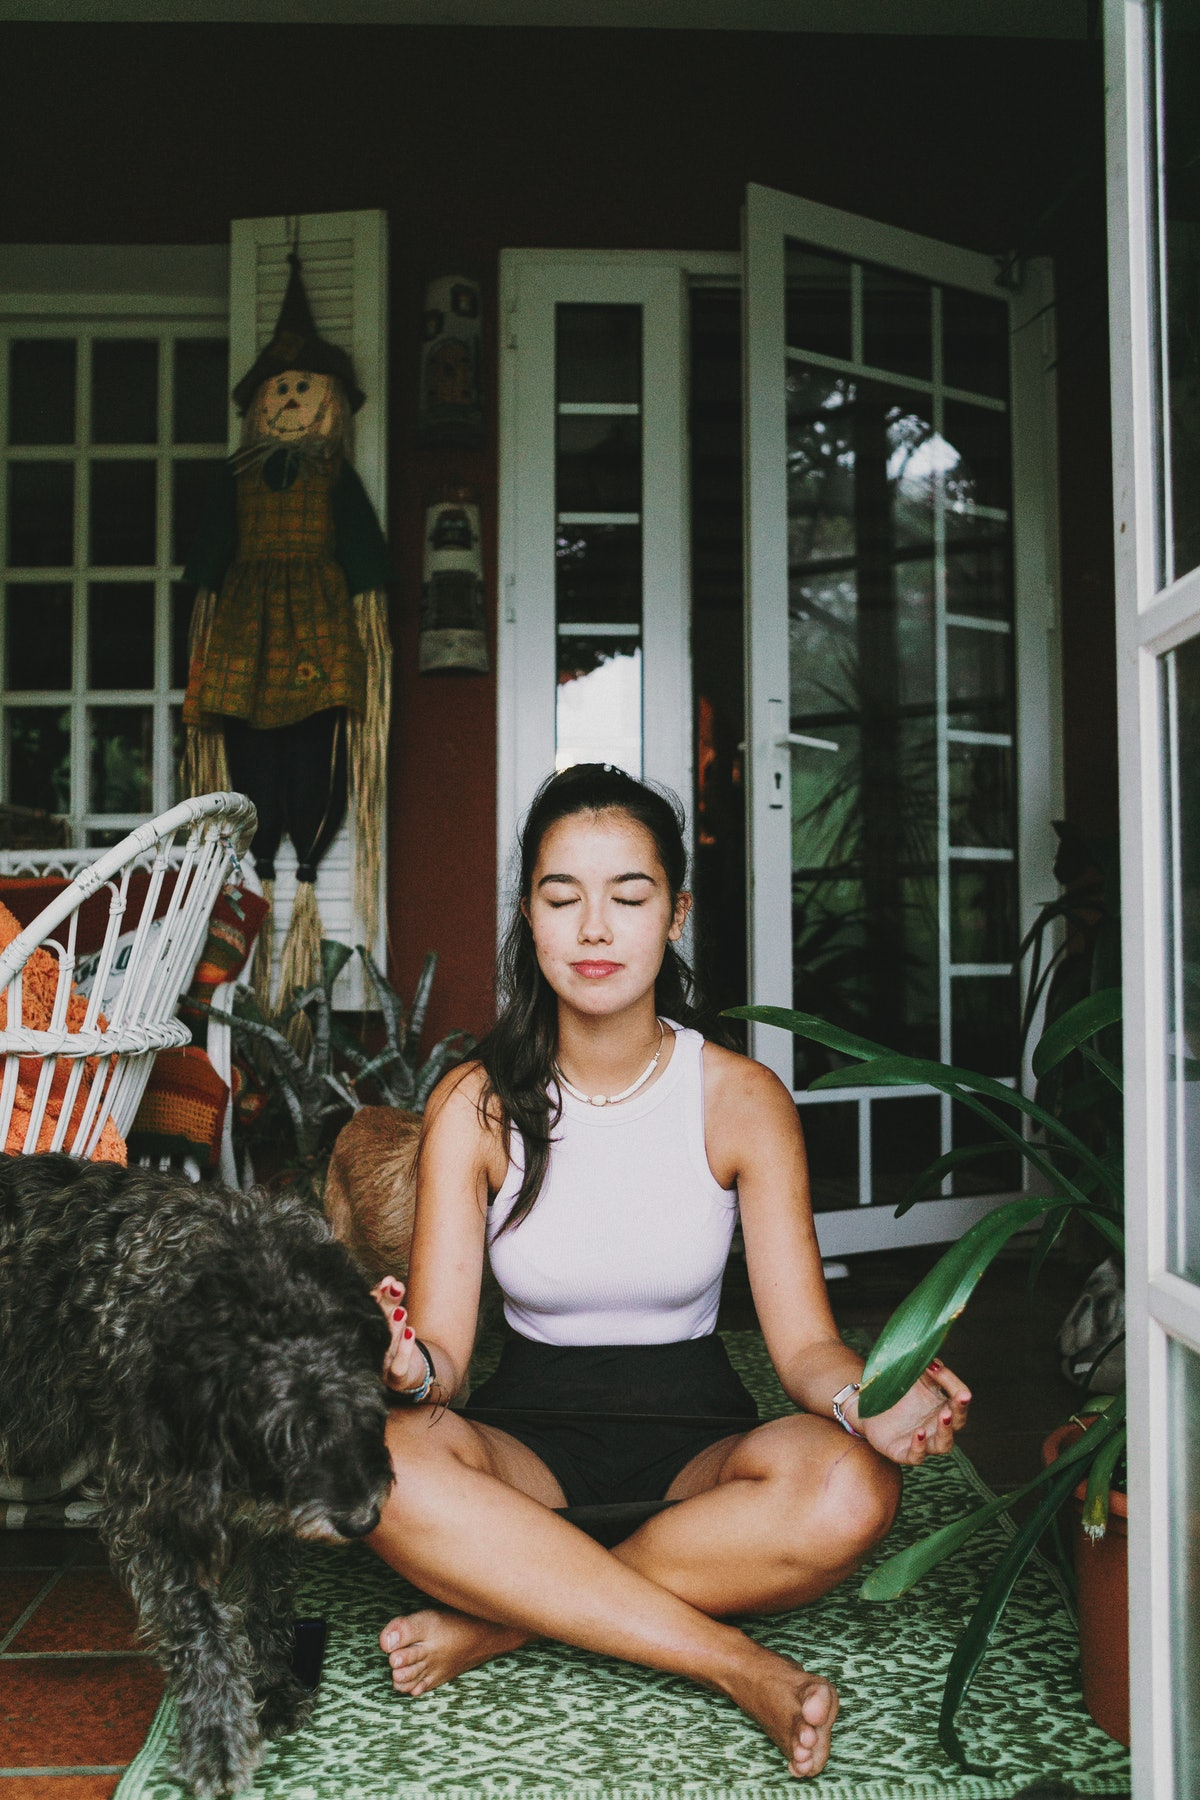 A young Asian woman sits on her porch and meditates on a rug while sitting next to her dog.